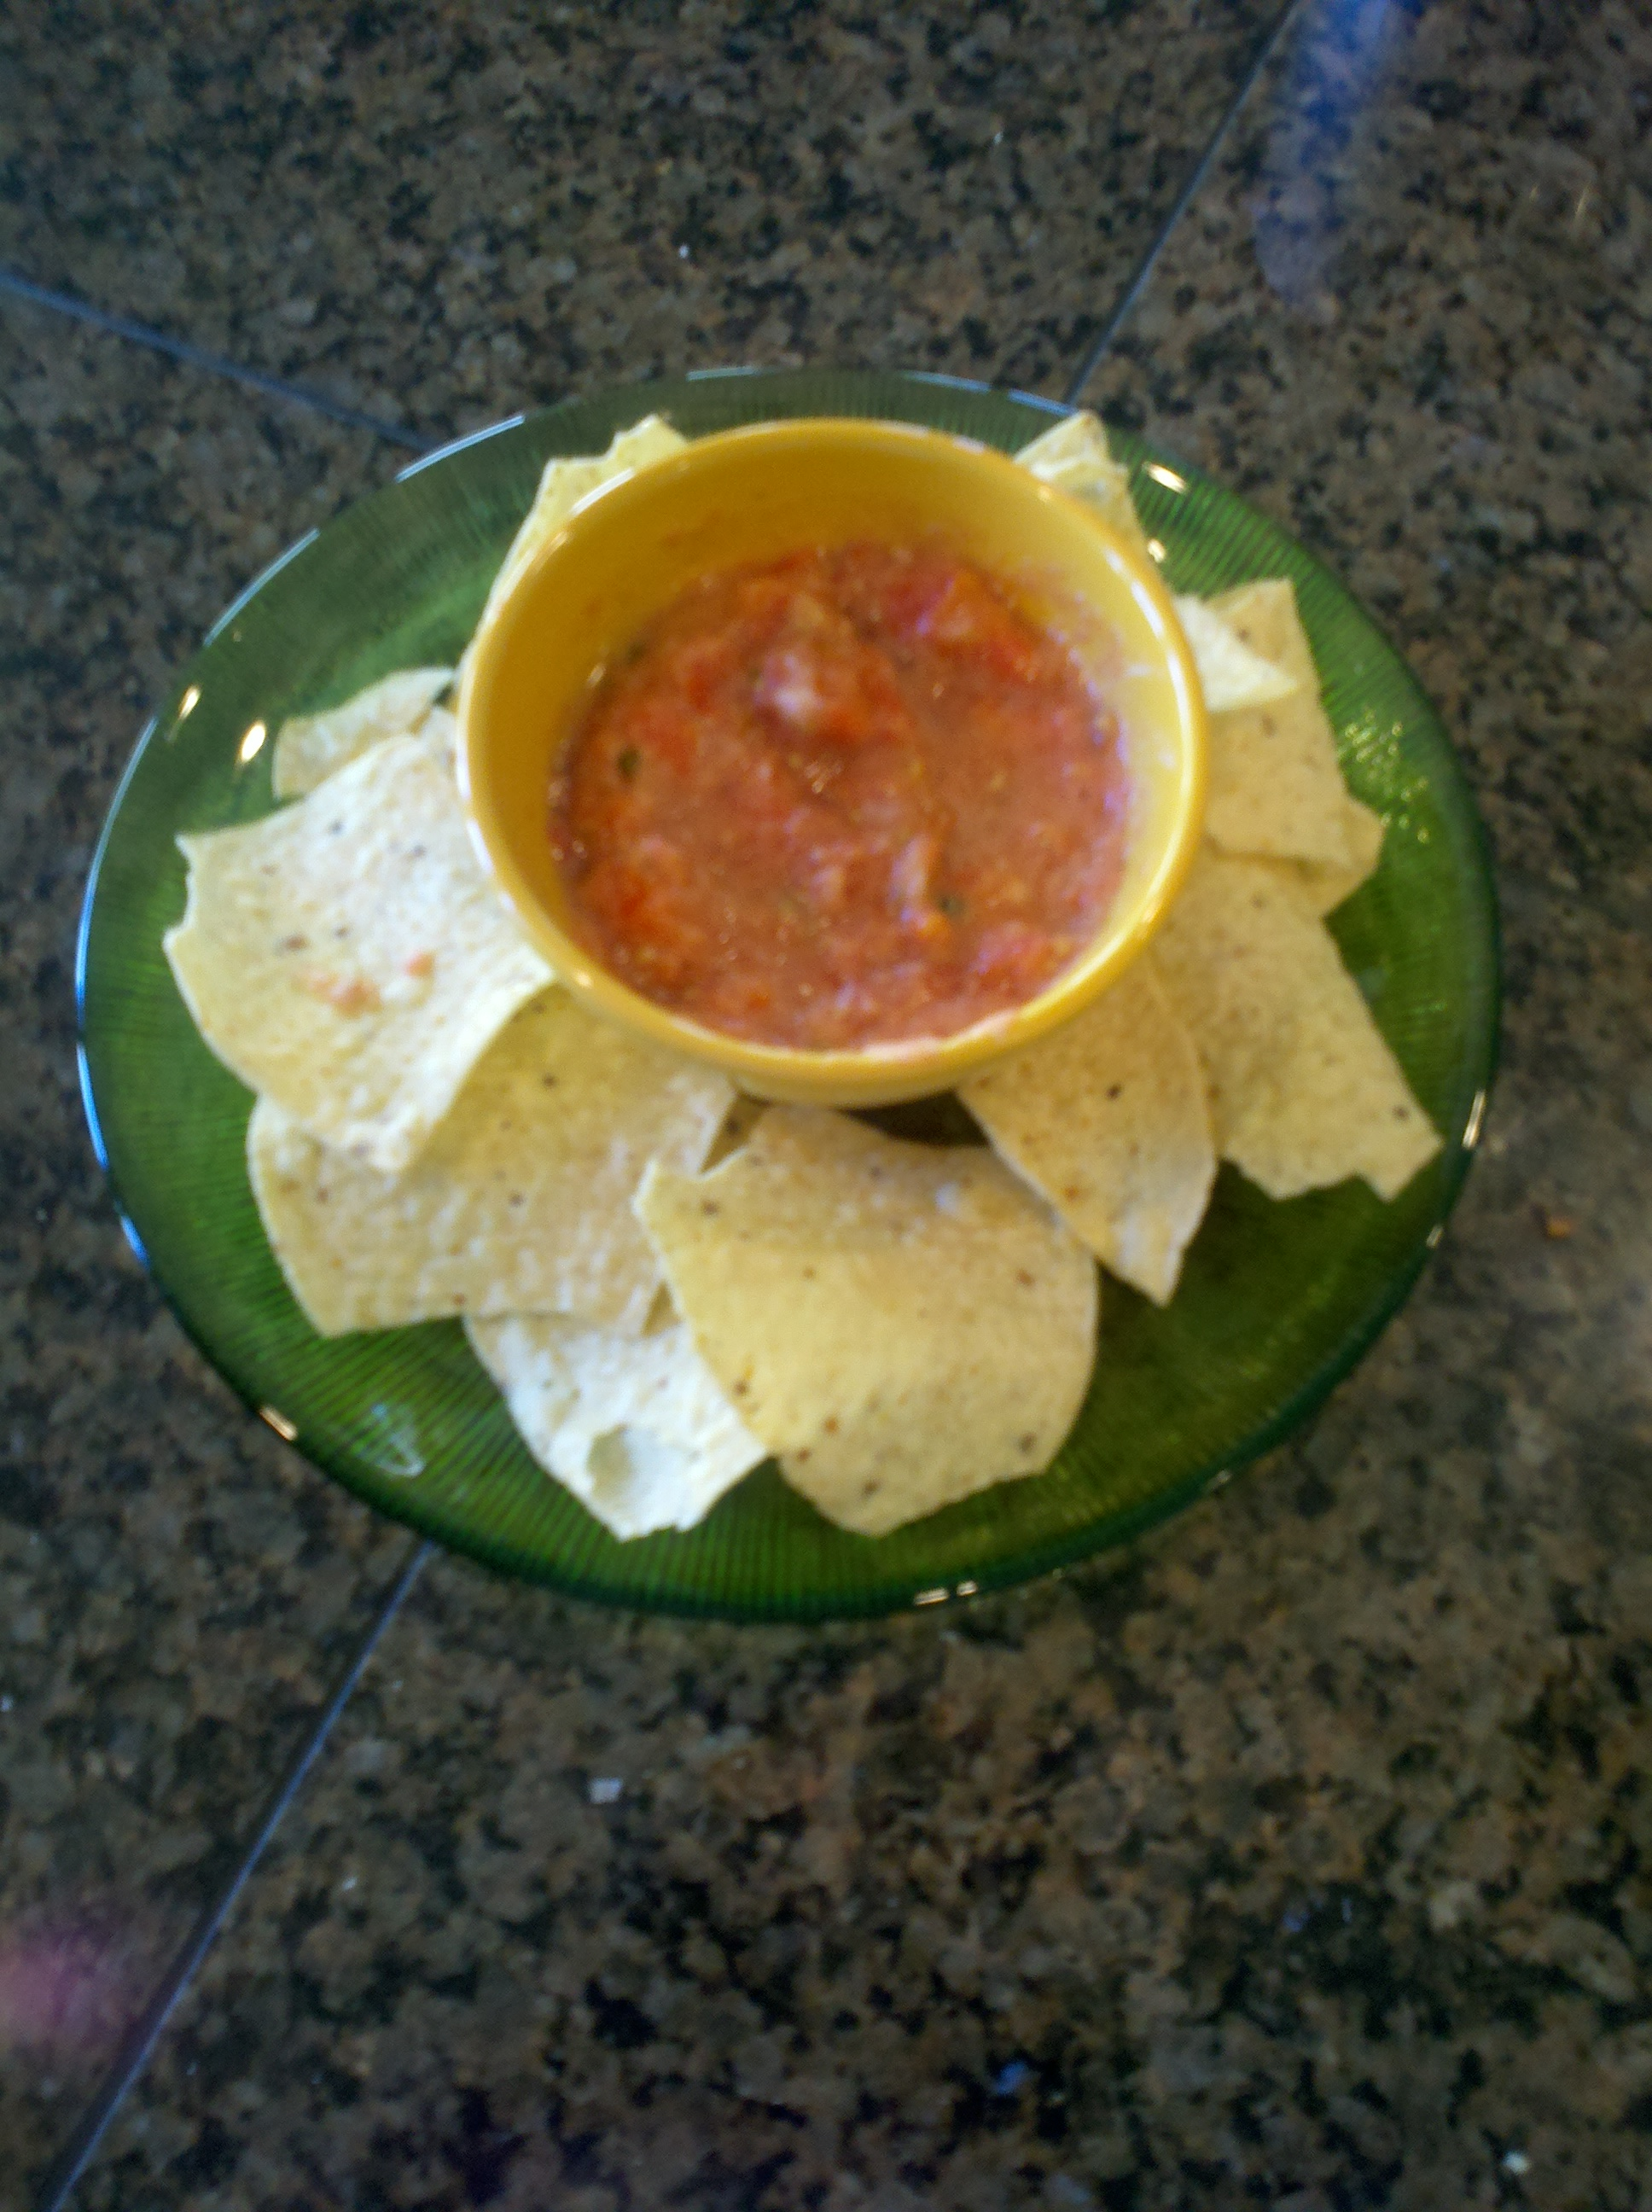 This managed mom gives the Magic Bullet and it's simple salsa recipe ...